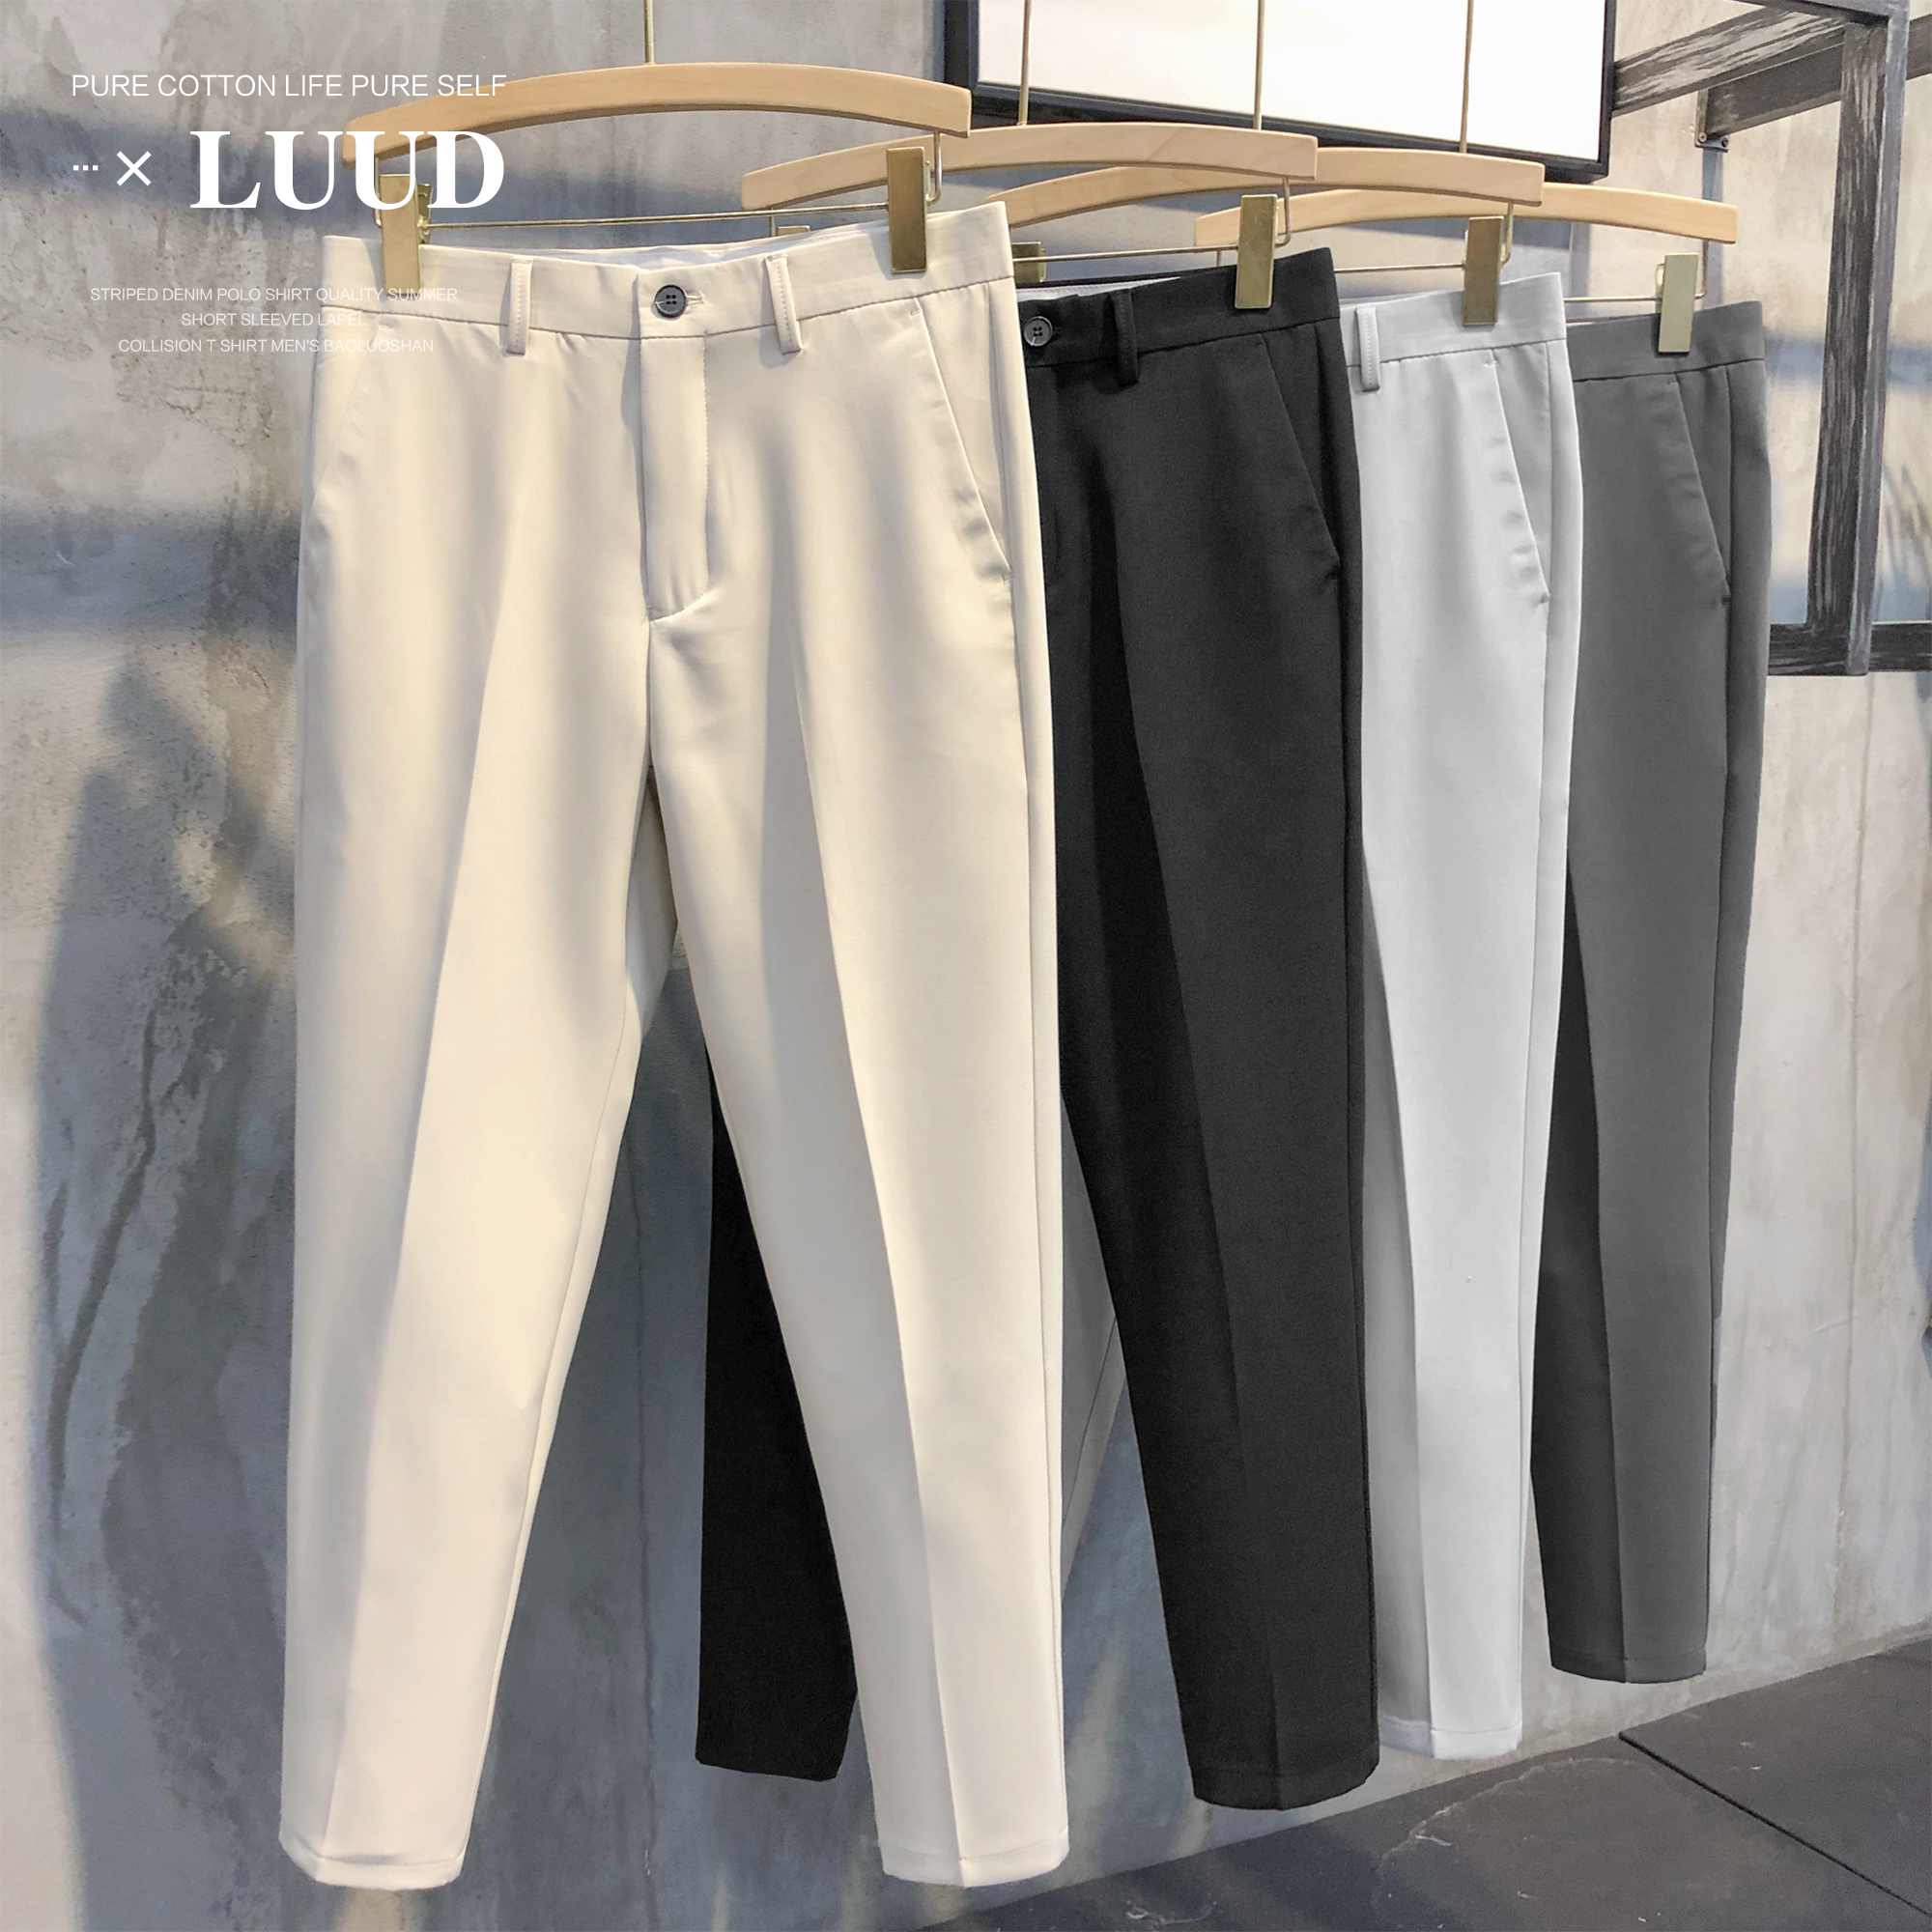 Luud 2021 spring / summer solid color tapered 9 / 9 western trousers mens British no iron slim Leggings casual pants